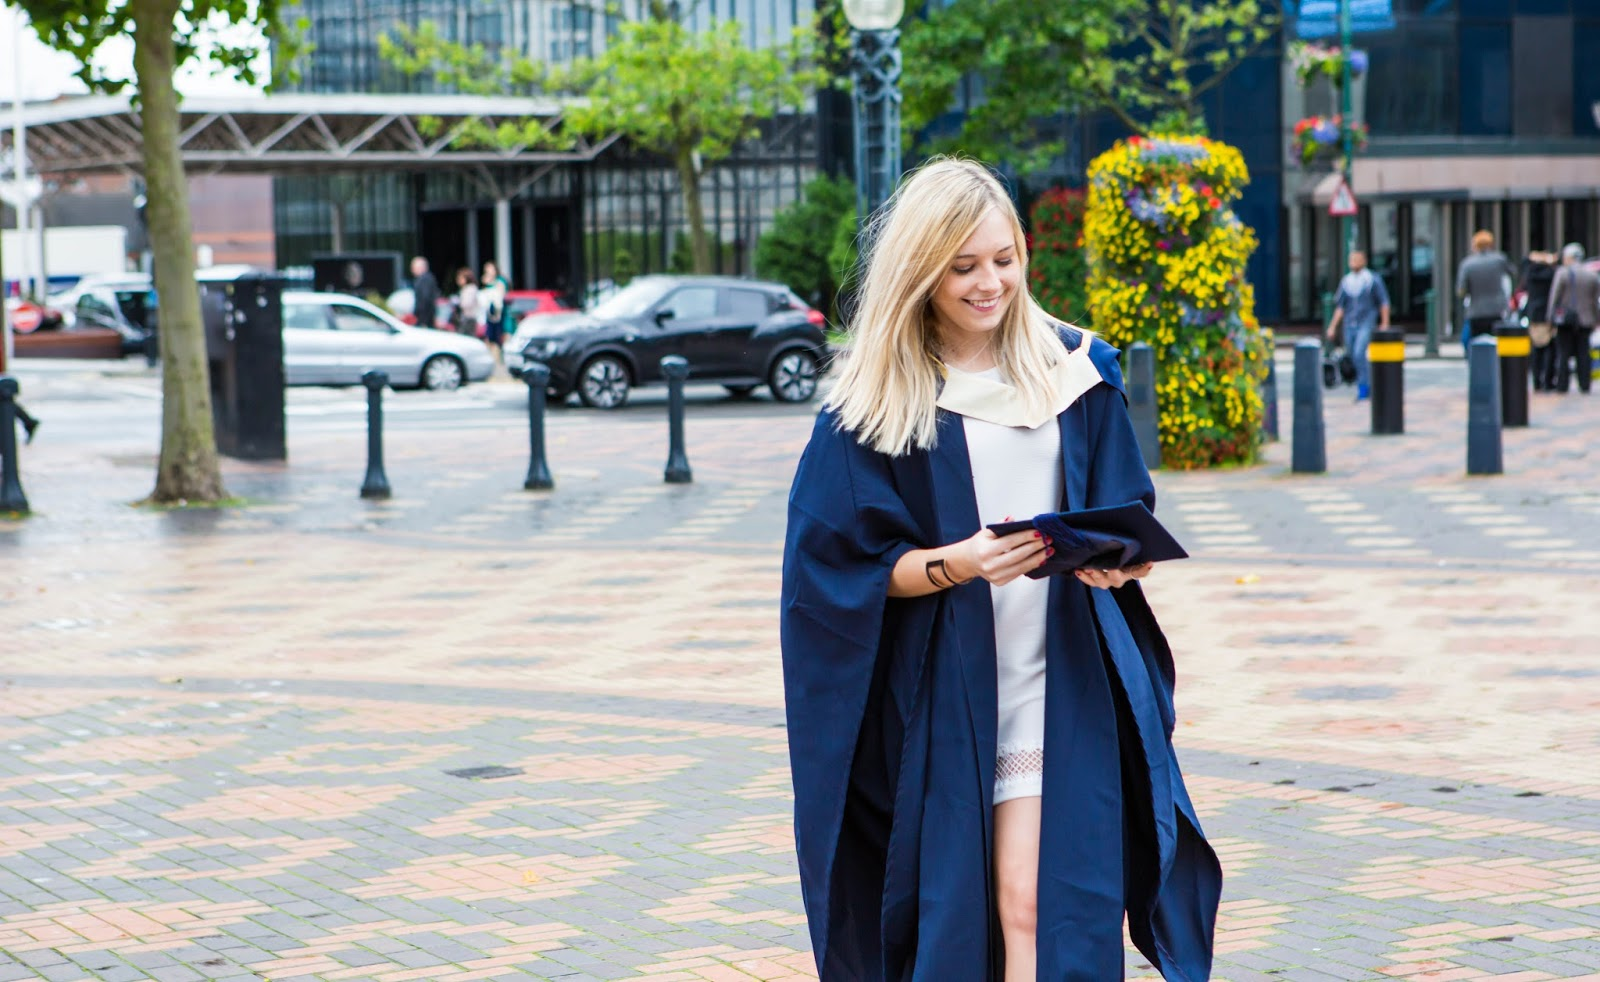 Graduation - Nicola - UK Travel & Fashion Blog